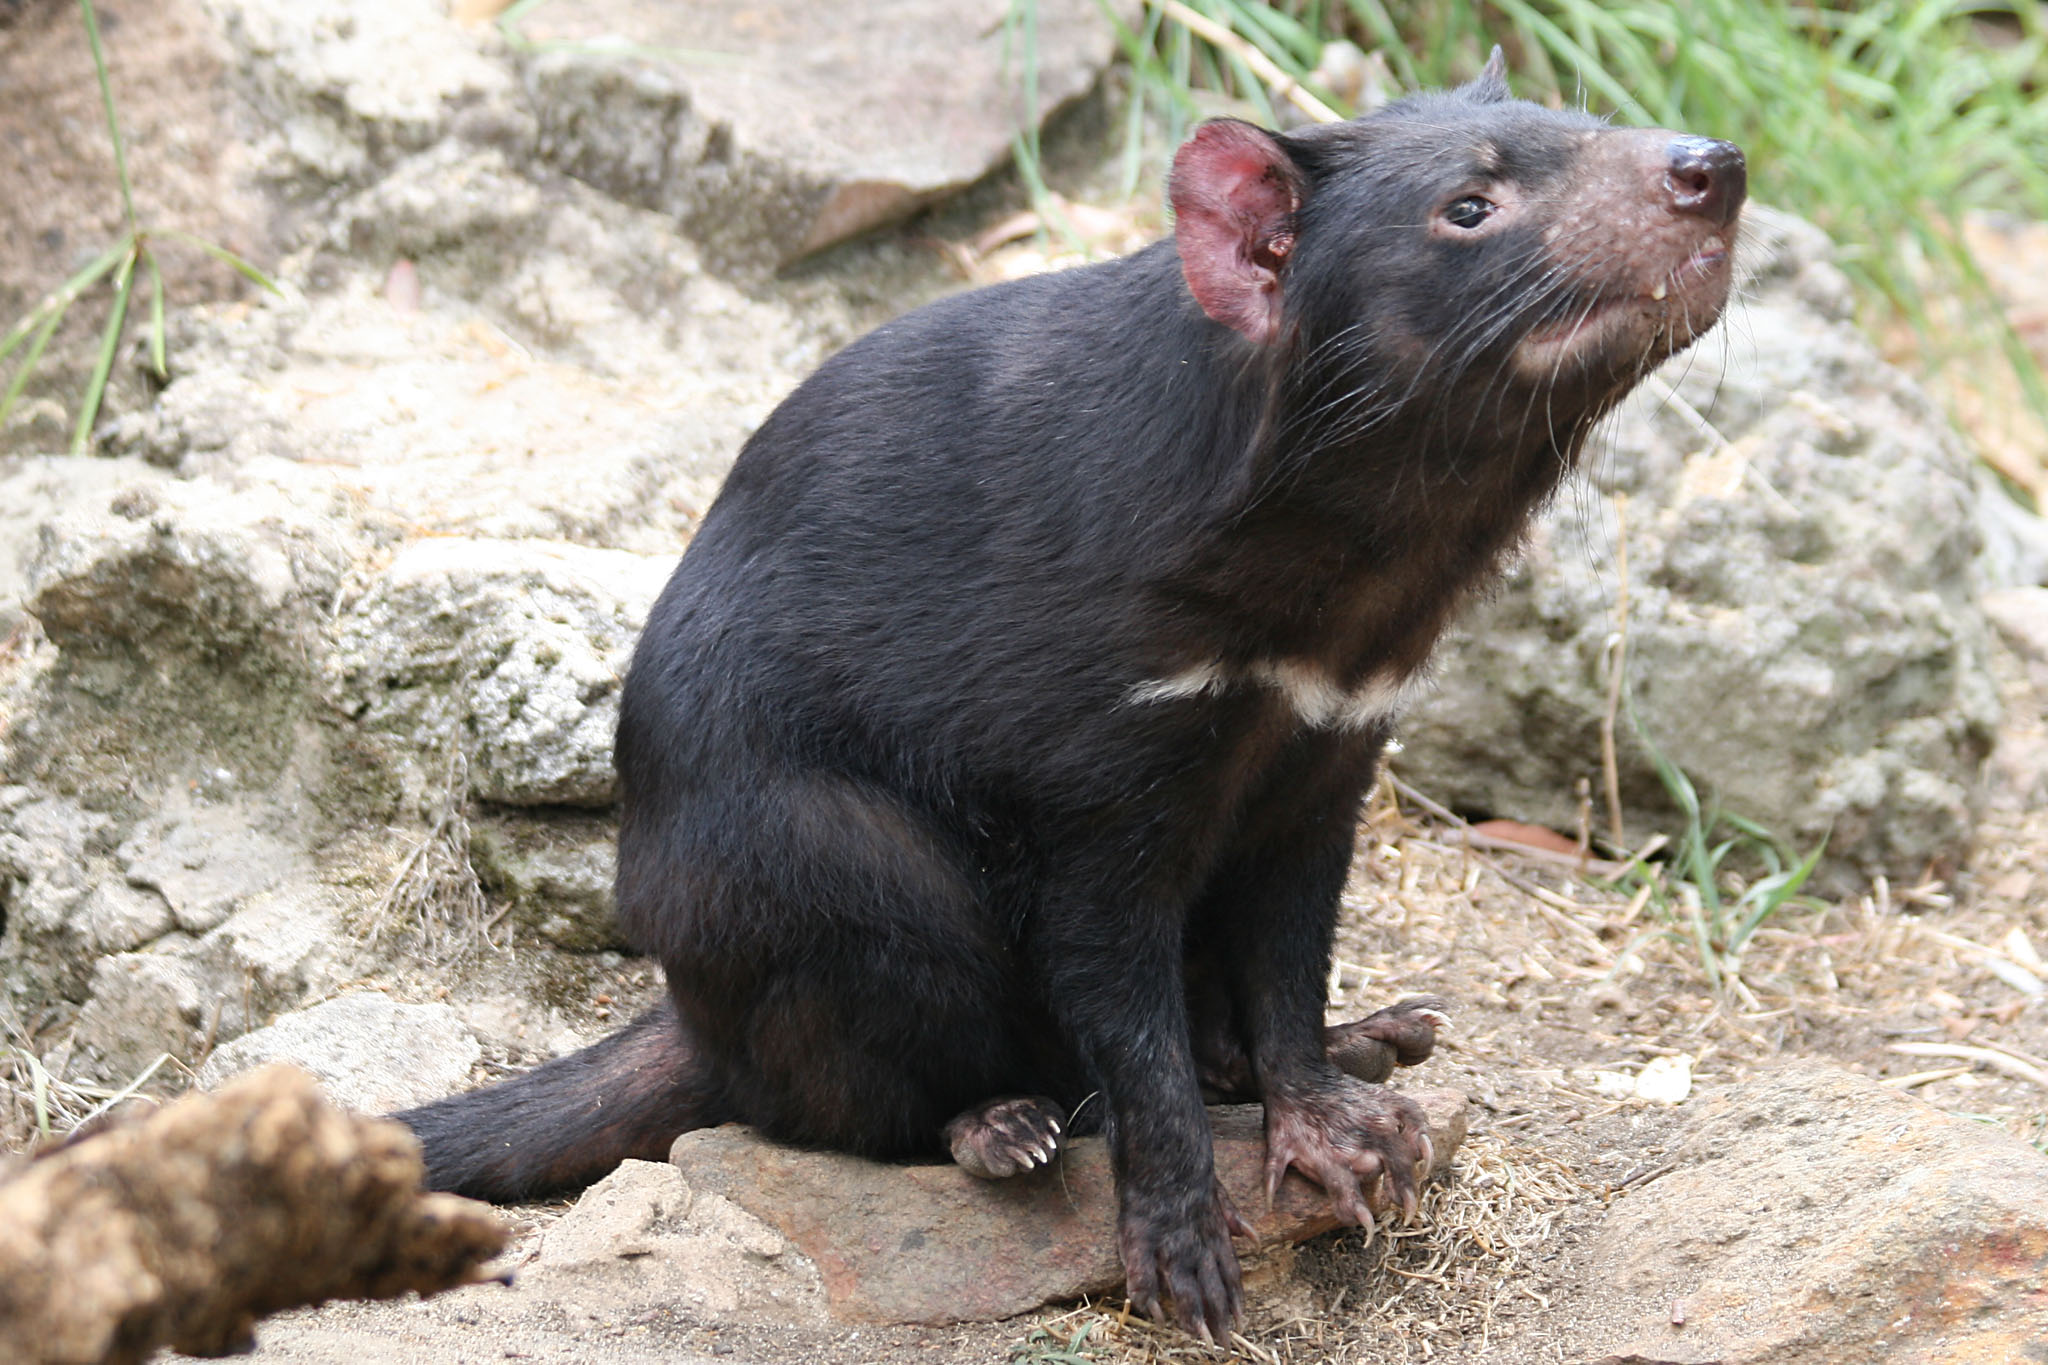 https://upload.wikimedia.org/wikipedia/commons/1/17/TasmanianDevil_1888.jpg